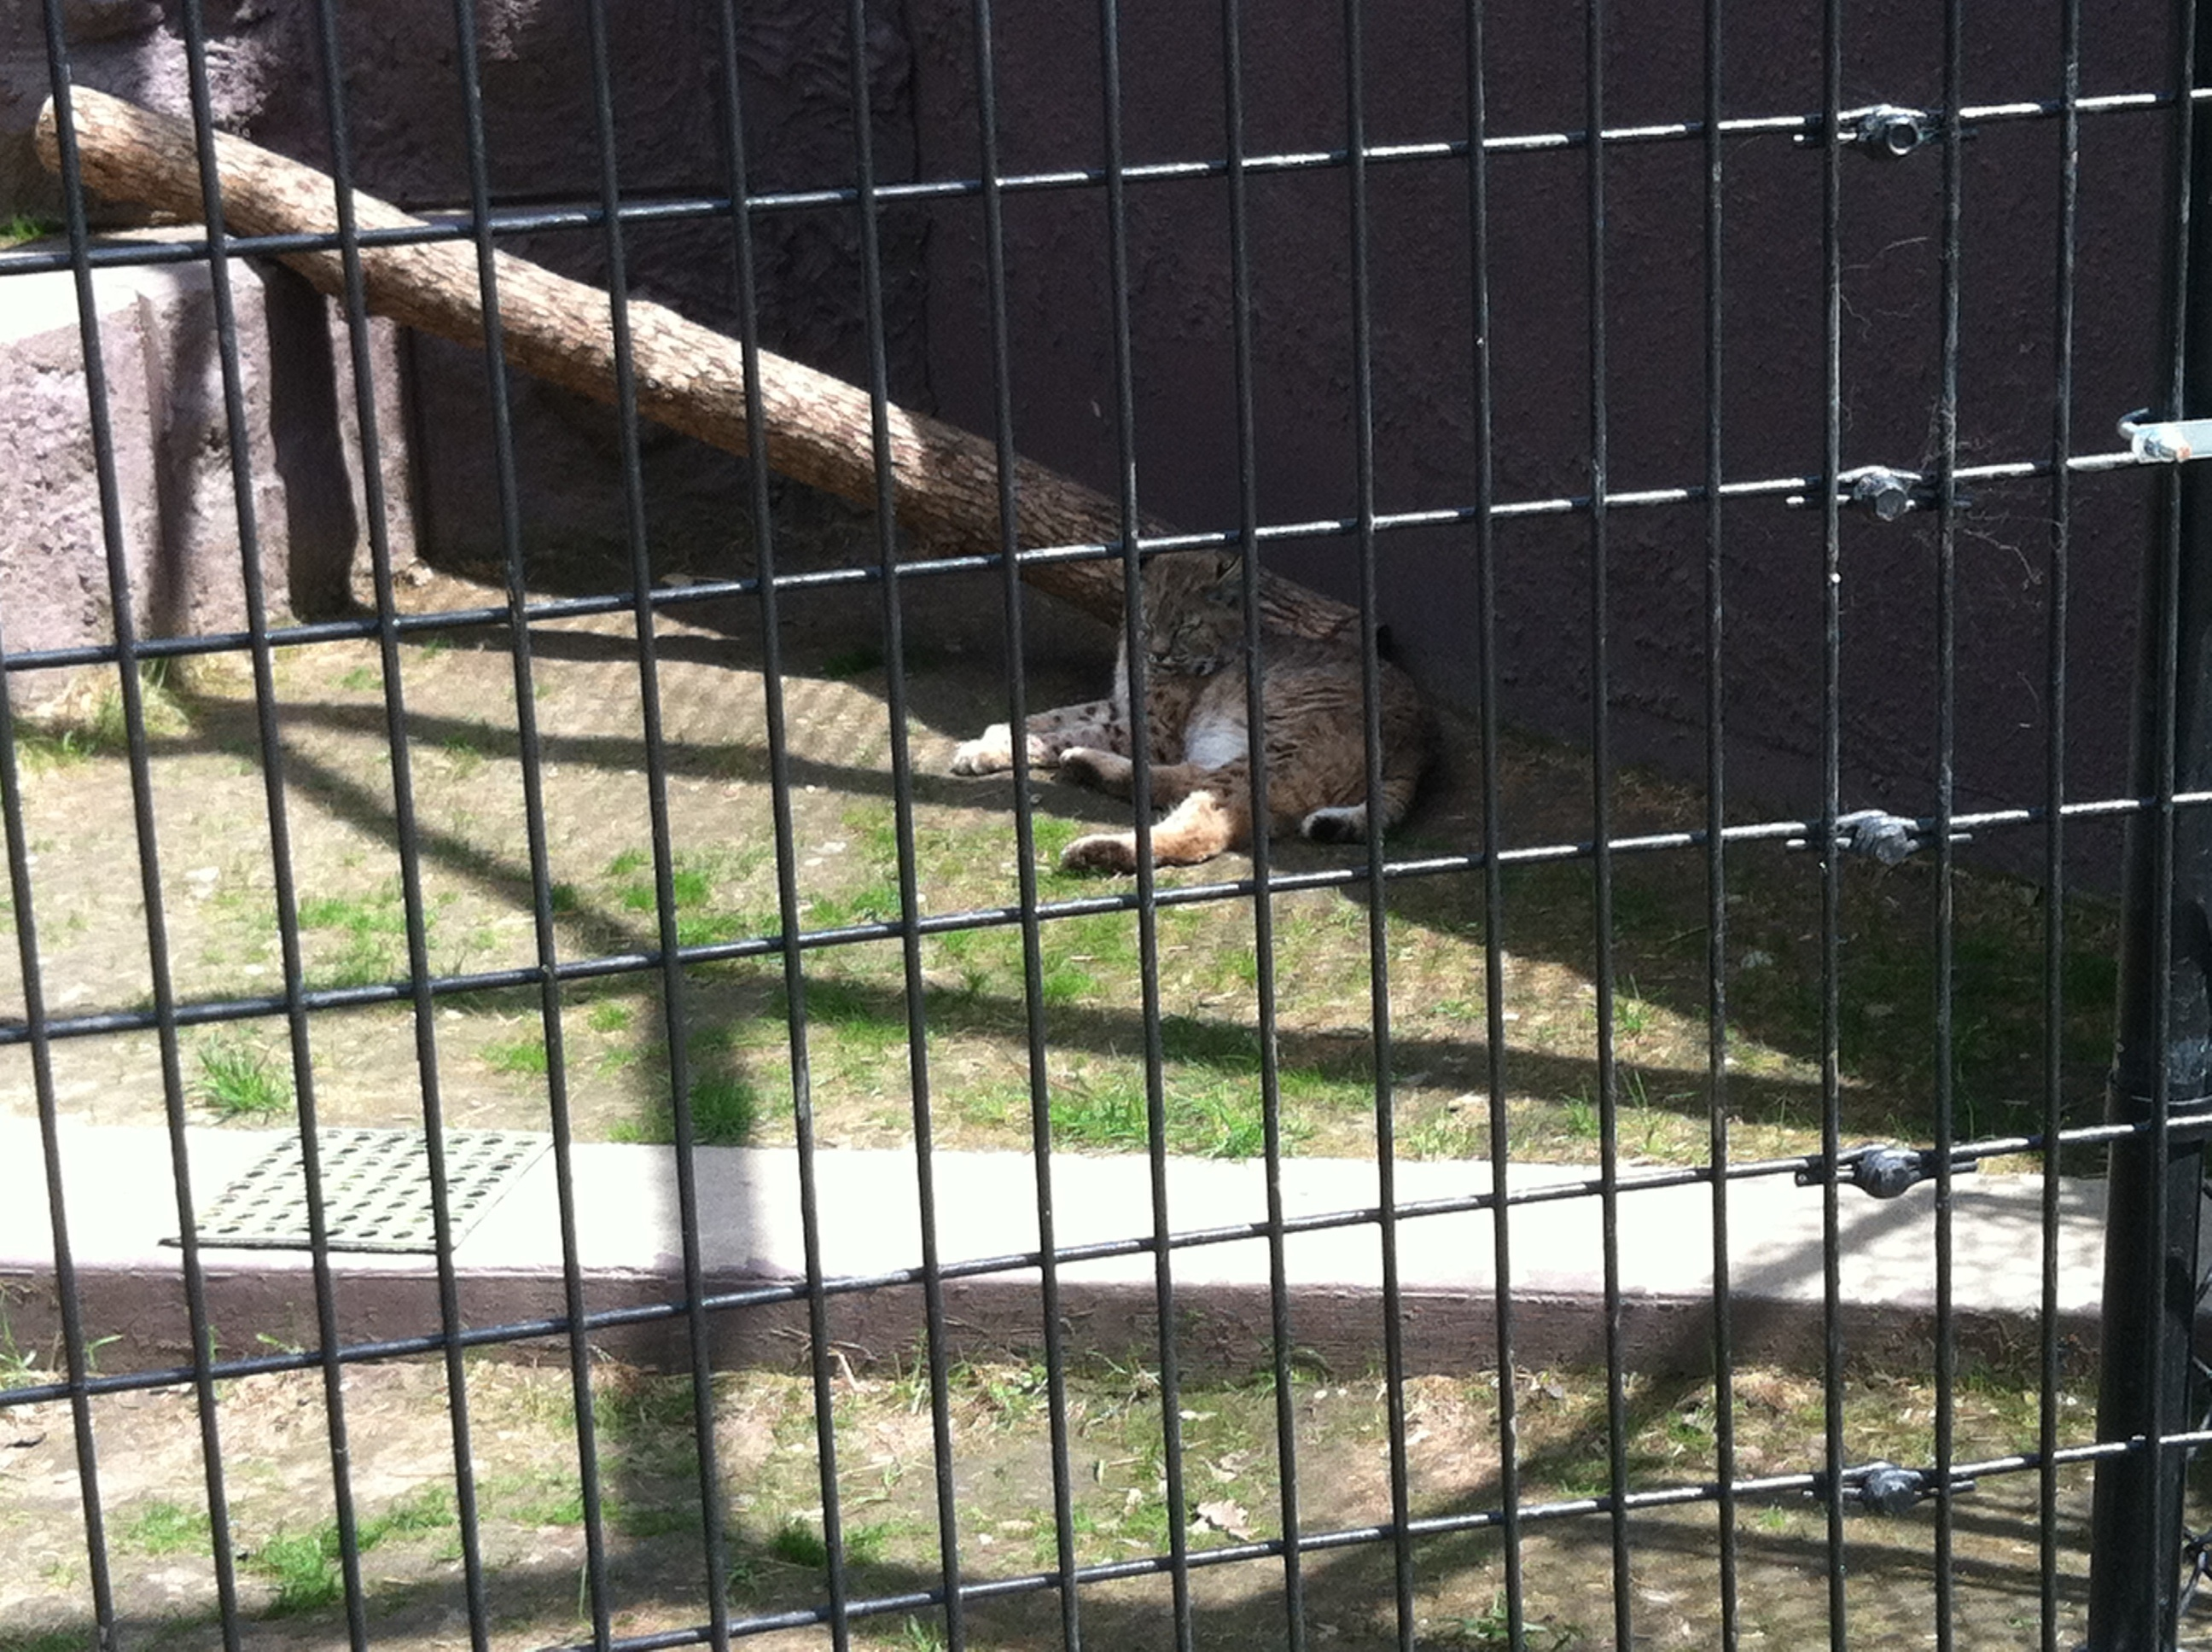 The animals were all out of their hiding spots today, including the Bobcat!